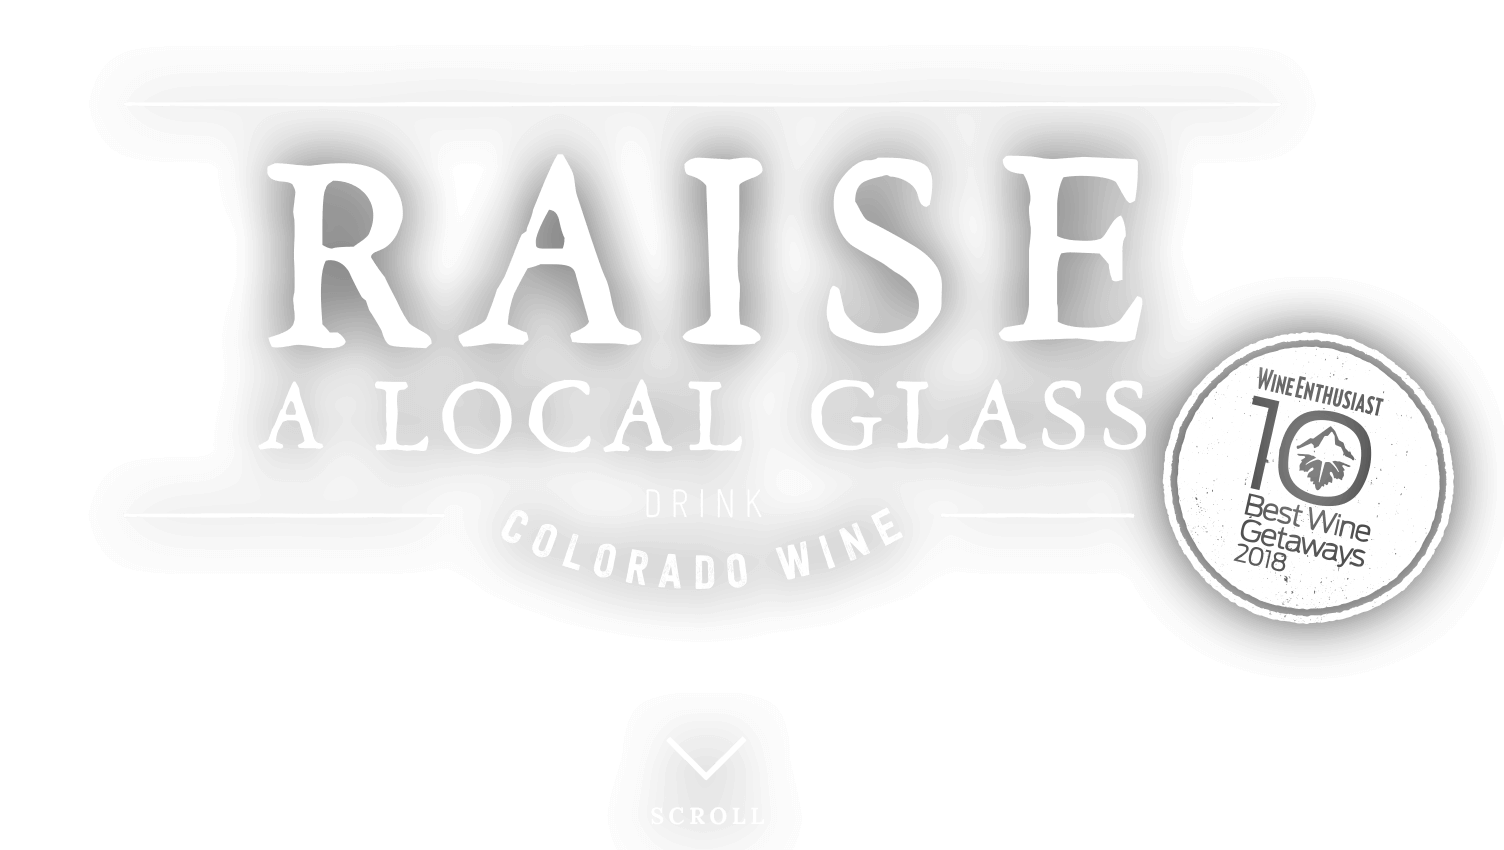 Raise a Local Glass • Drink Colorado Wine